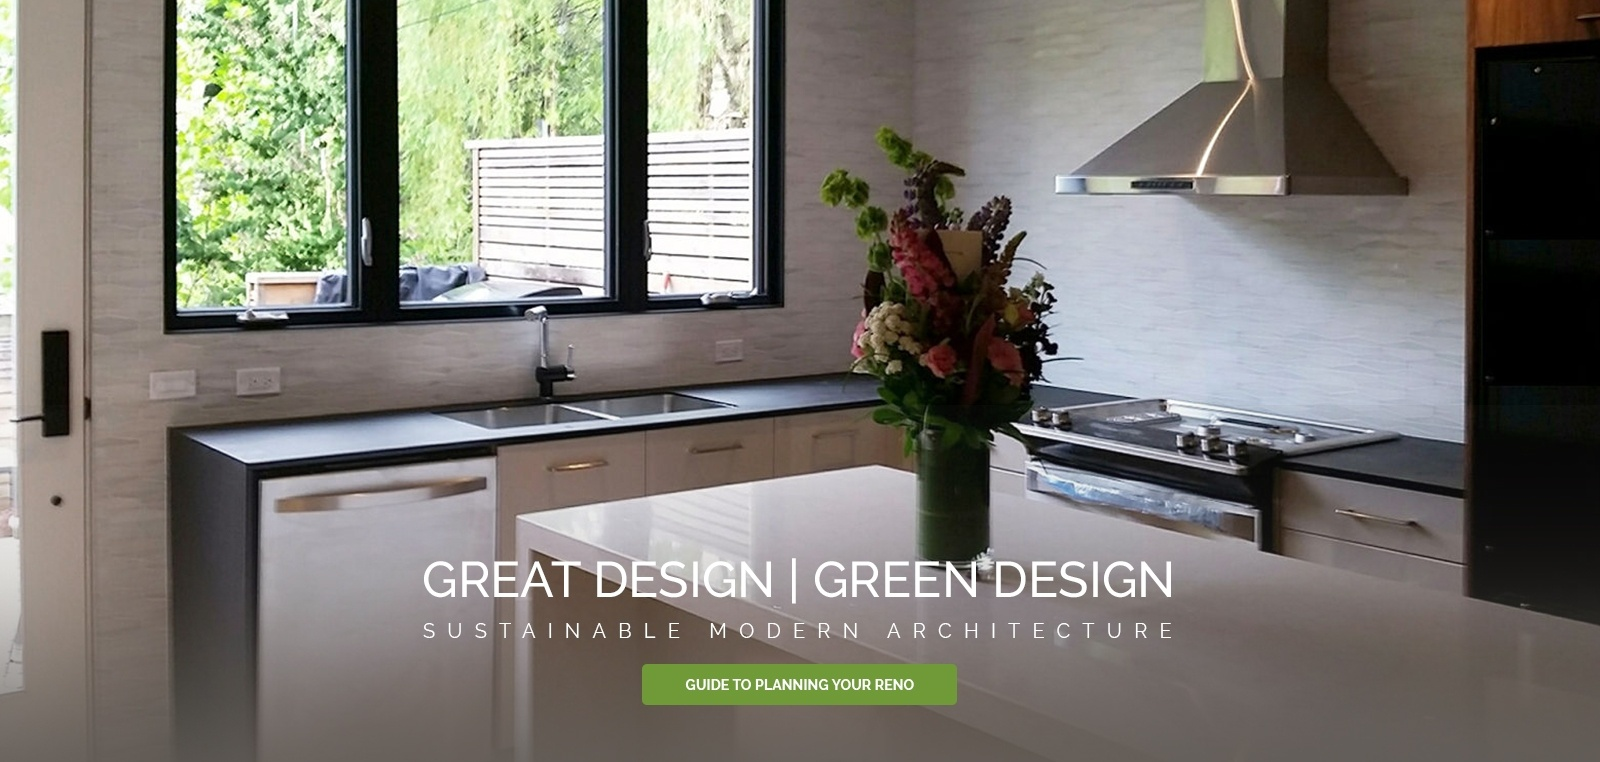 The Architect Builders Collaborative Inc. - Green Architects and Designers in Toronto